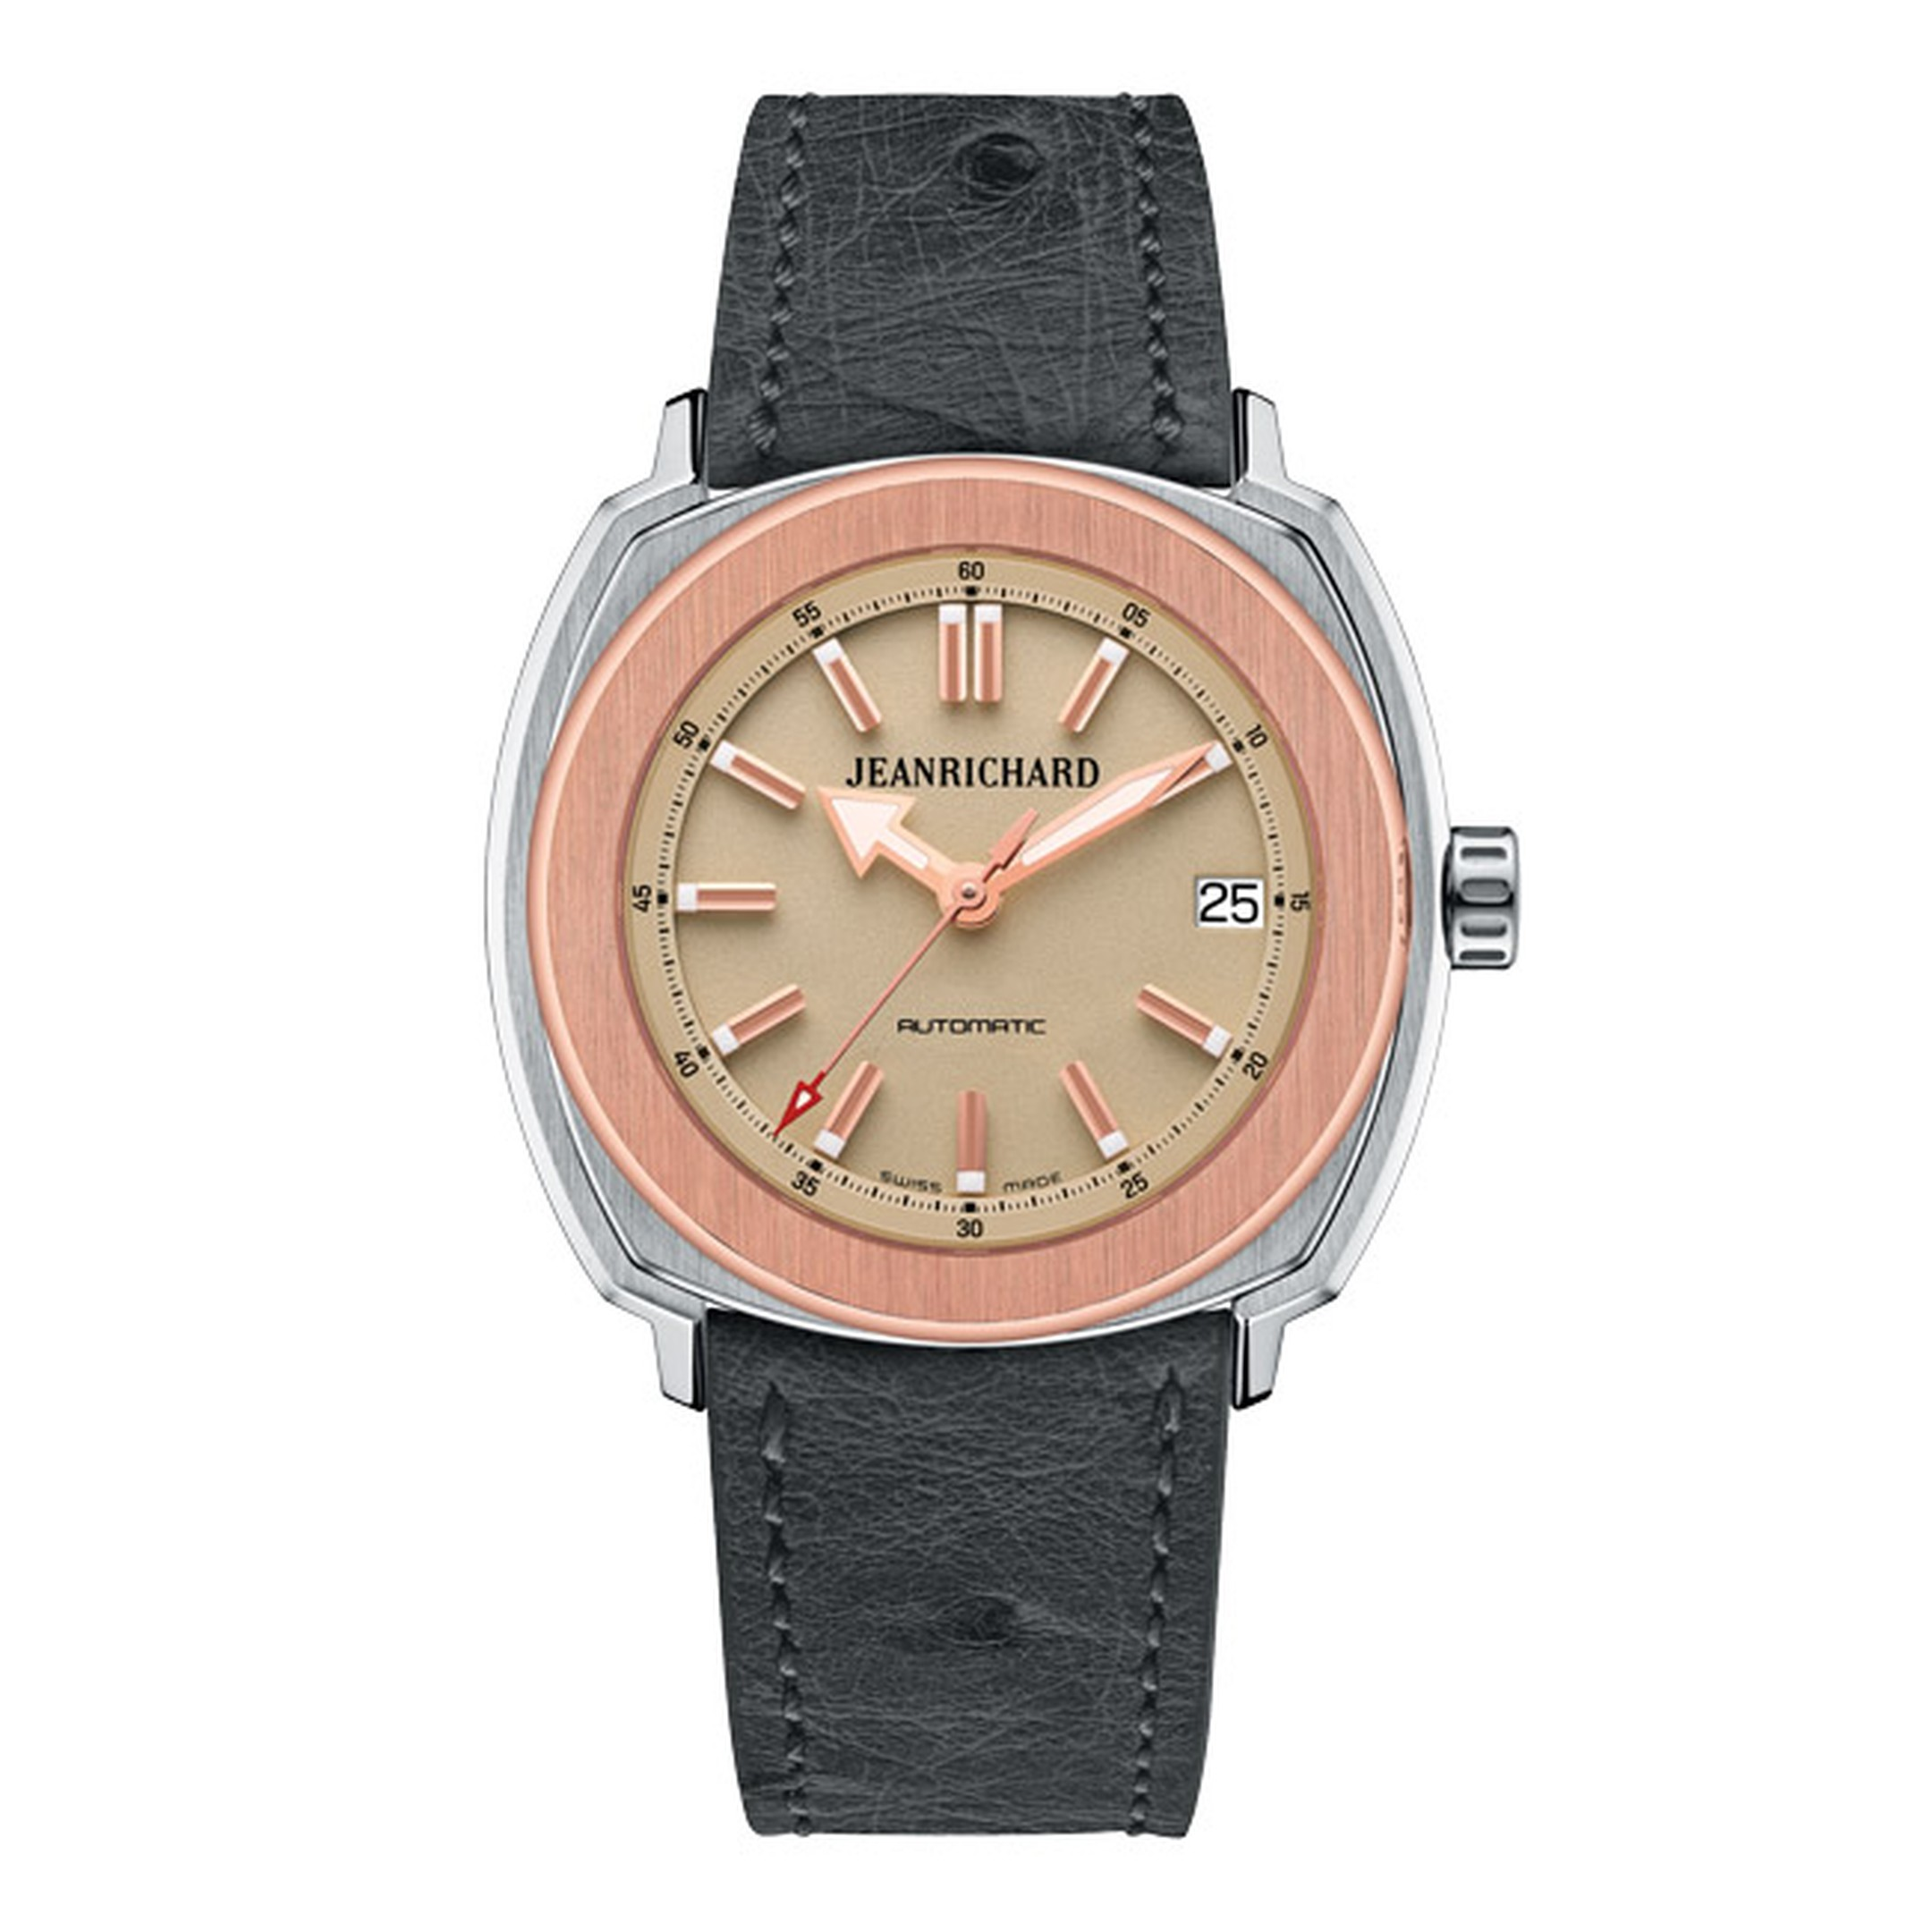 JeanRichard Terrascope watch with a bronze dial designed specifically for women.